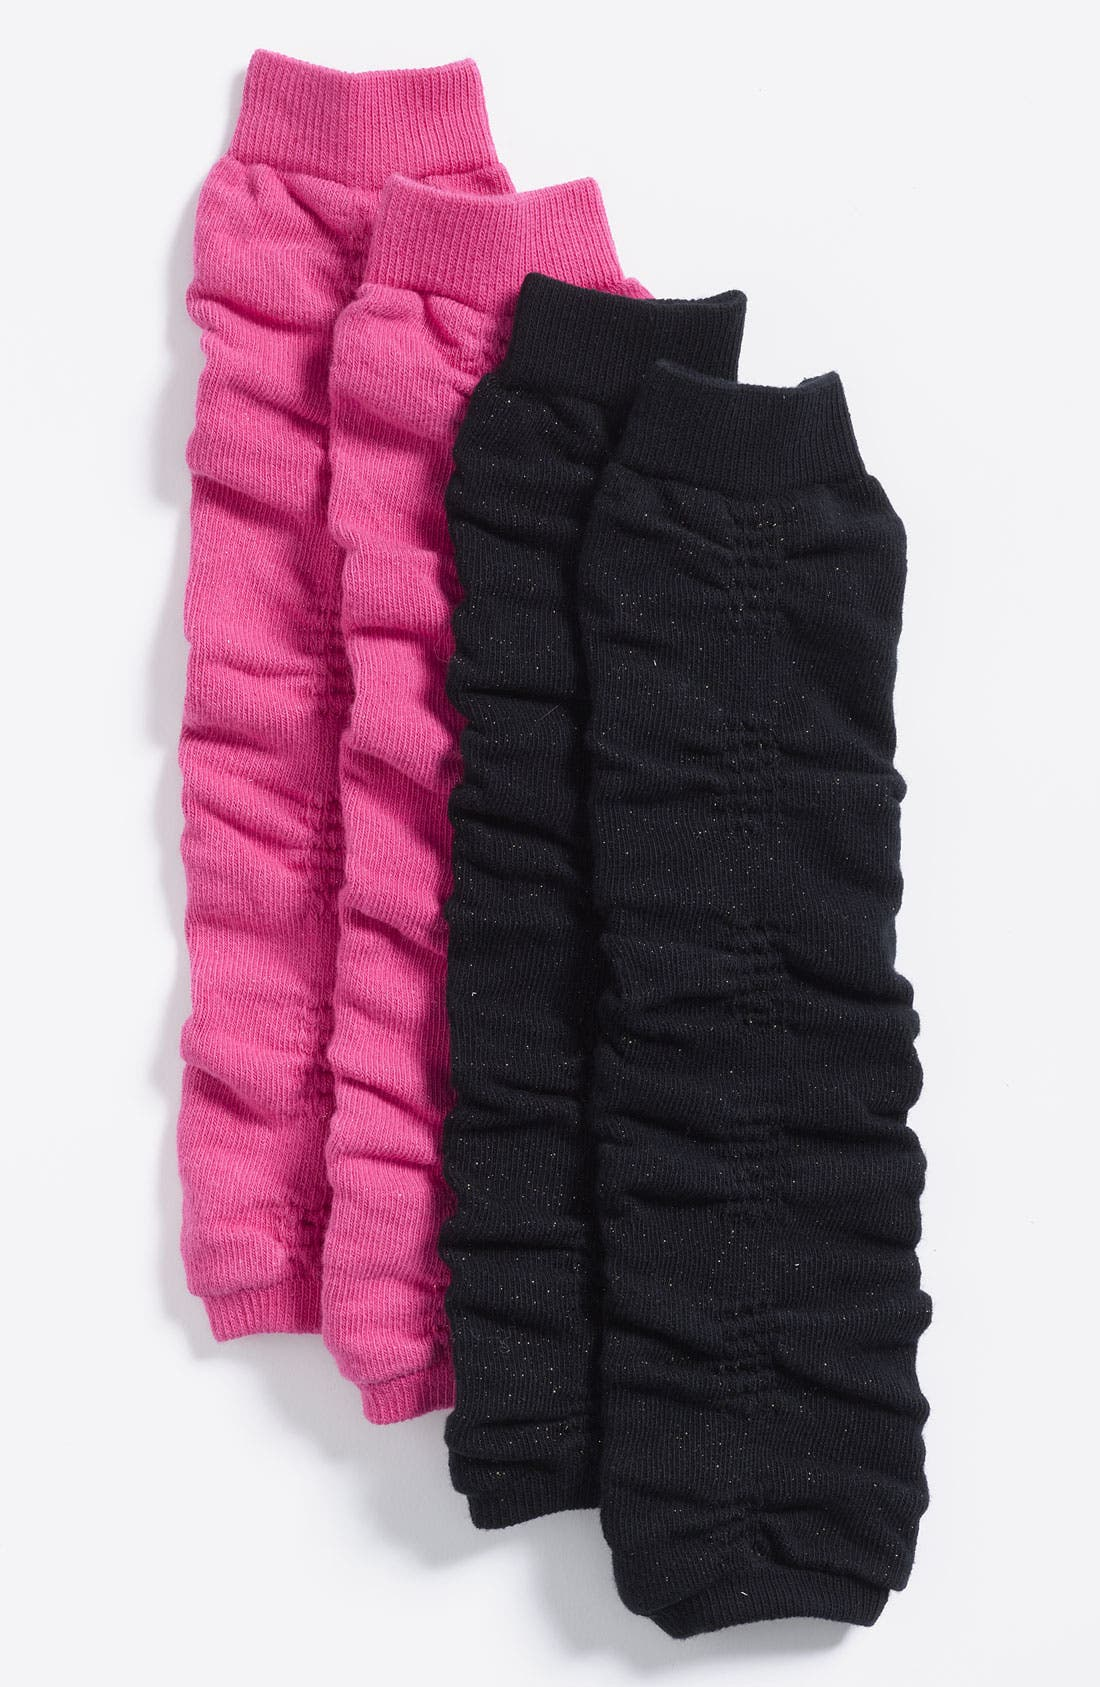 Main Image - Nordstrom Leg Warmers (2-Pack) (Girls)